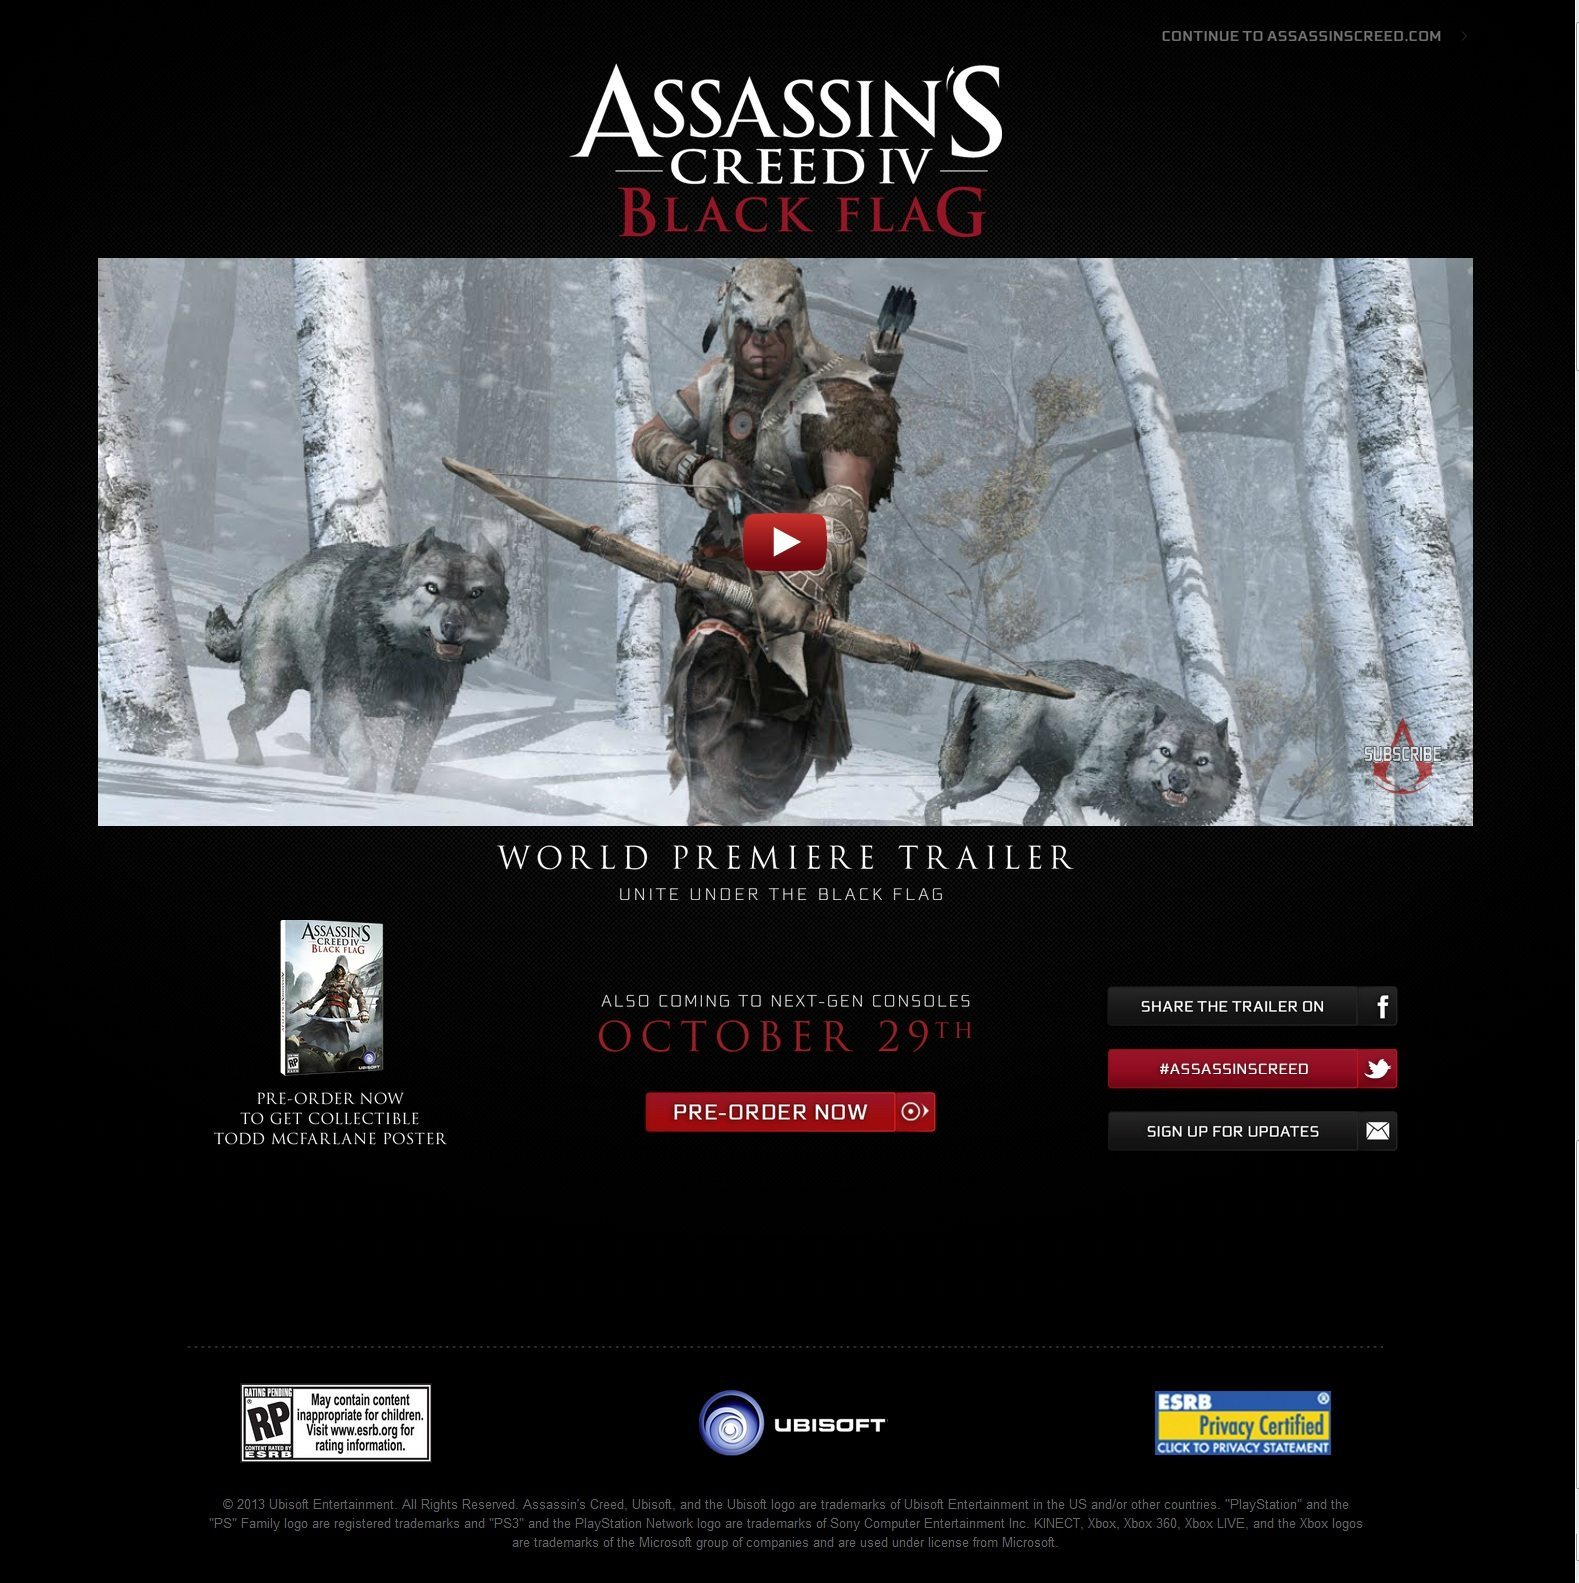 Assassin's Creed IV: Black Flag Release Date Leaked